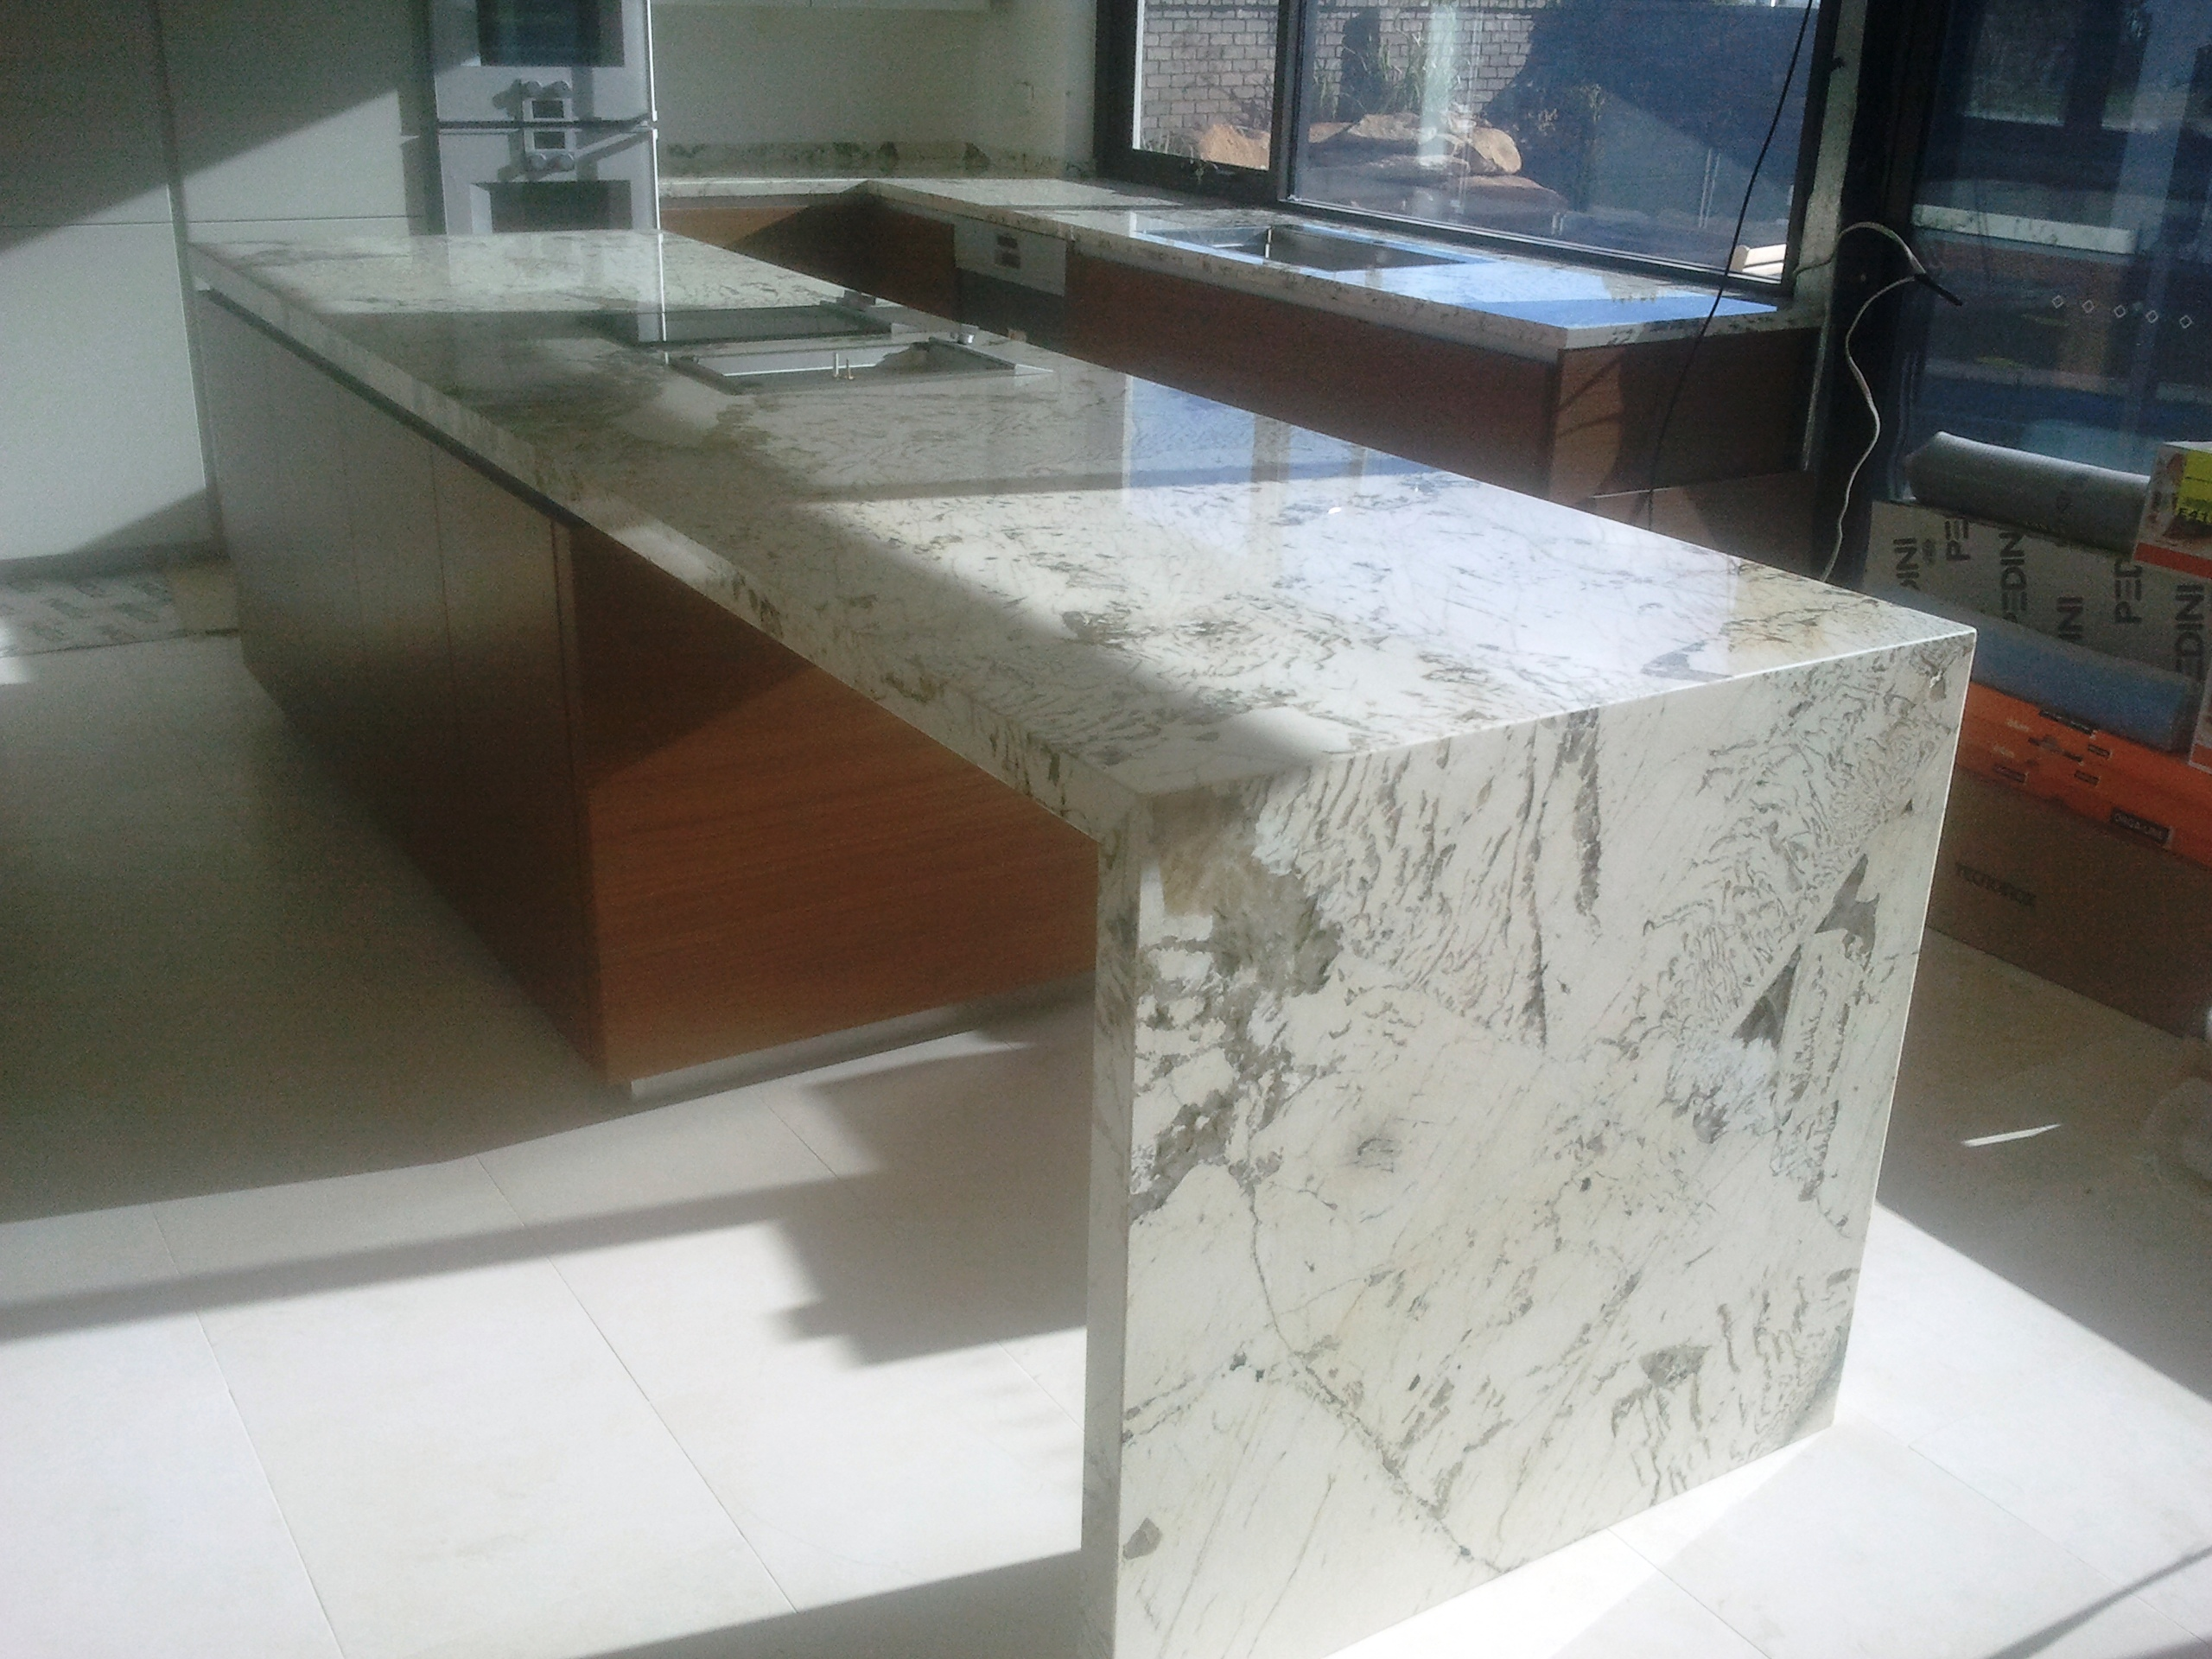 Granite amp Stone Benchtops Perth Marble Dining Tables : WATERFALLLEG from www.gcsmith.com.au size 2560 x 1920 jpeg 1403kB